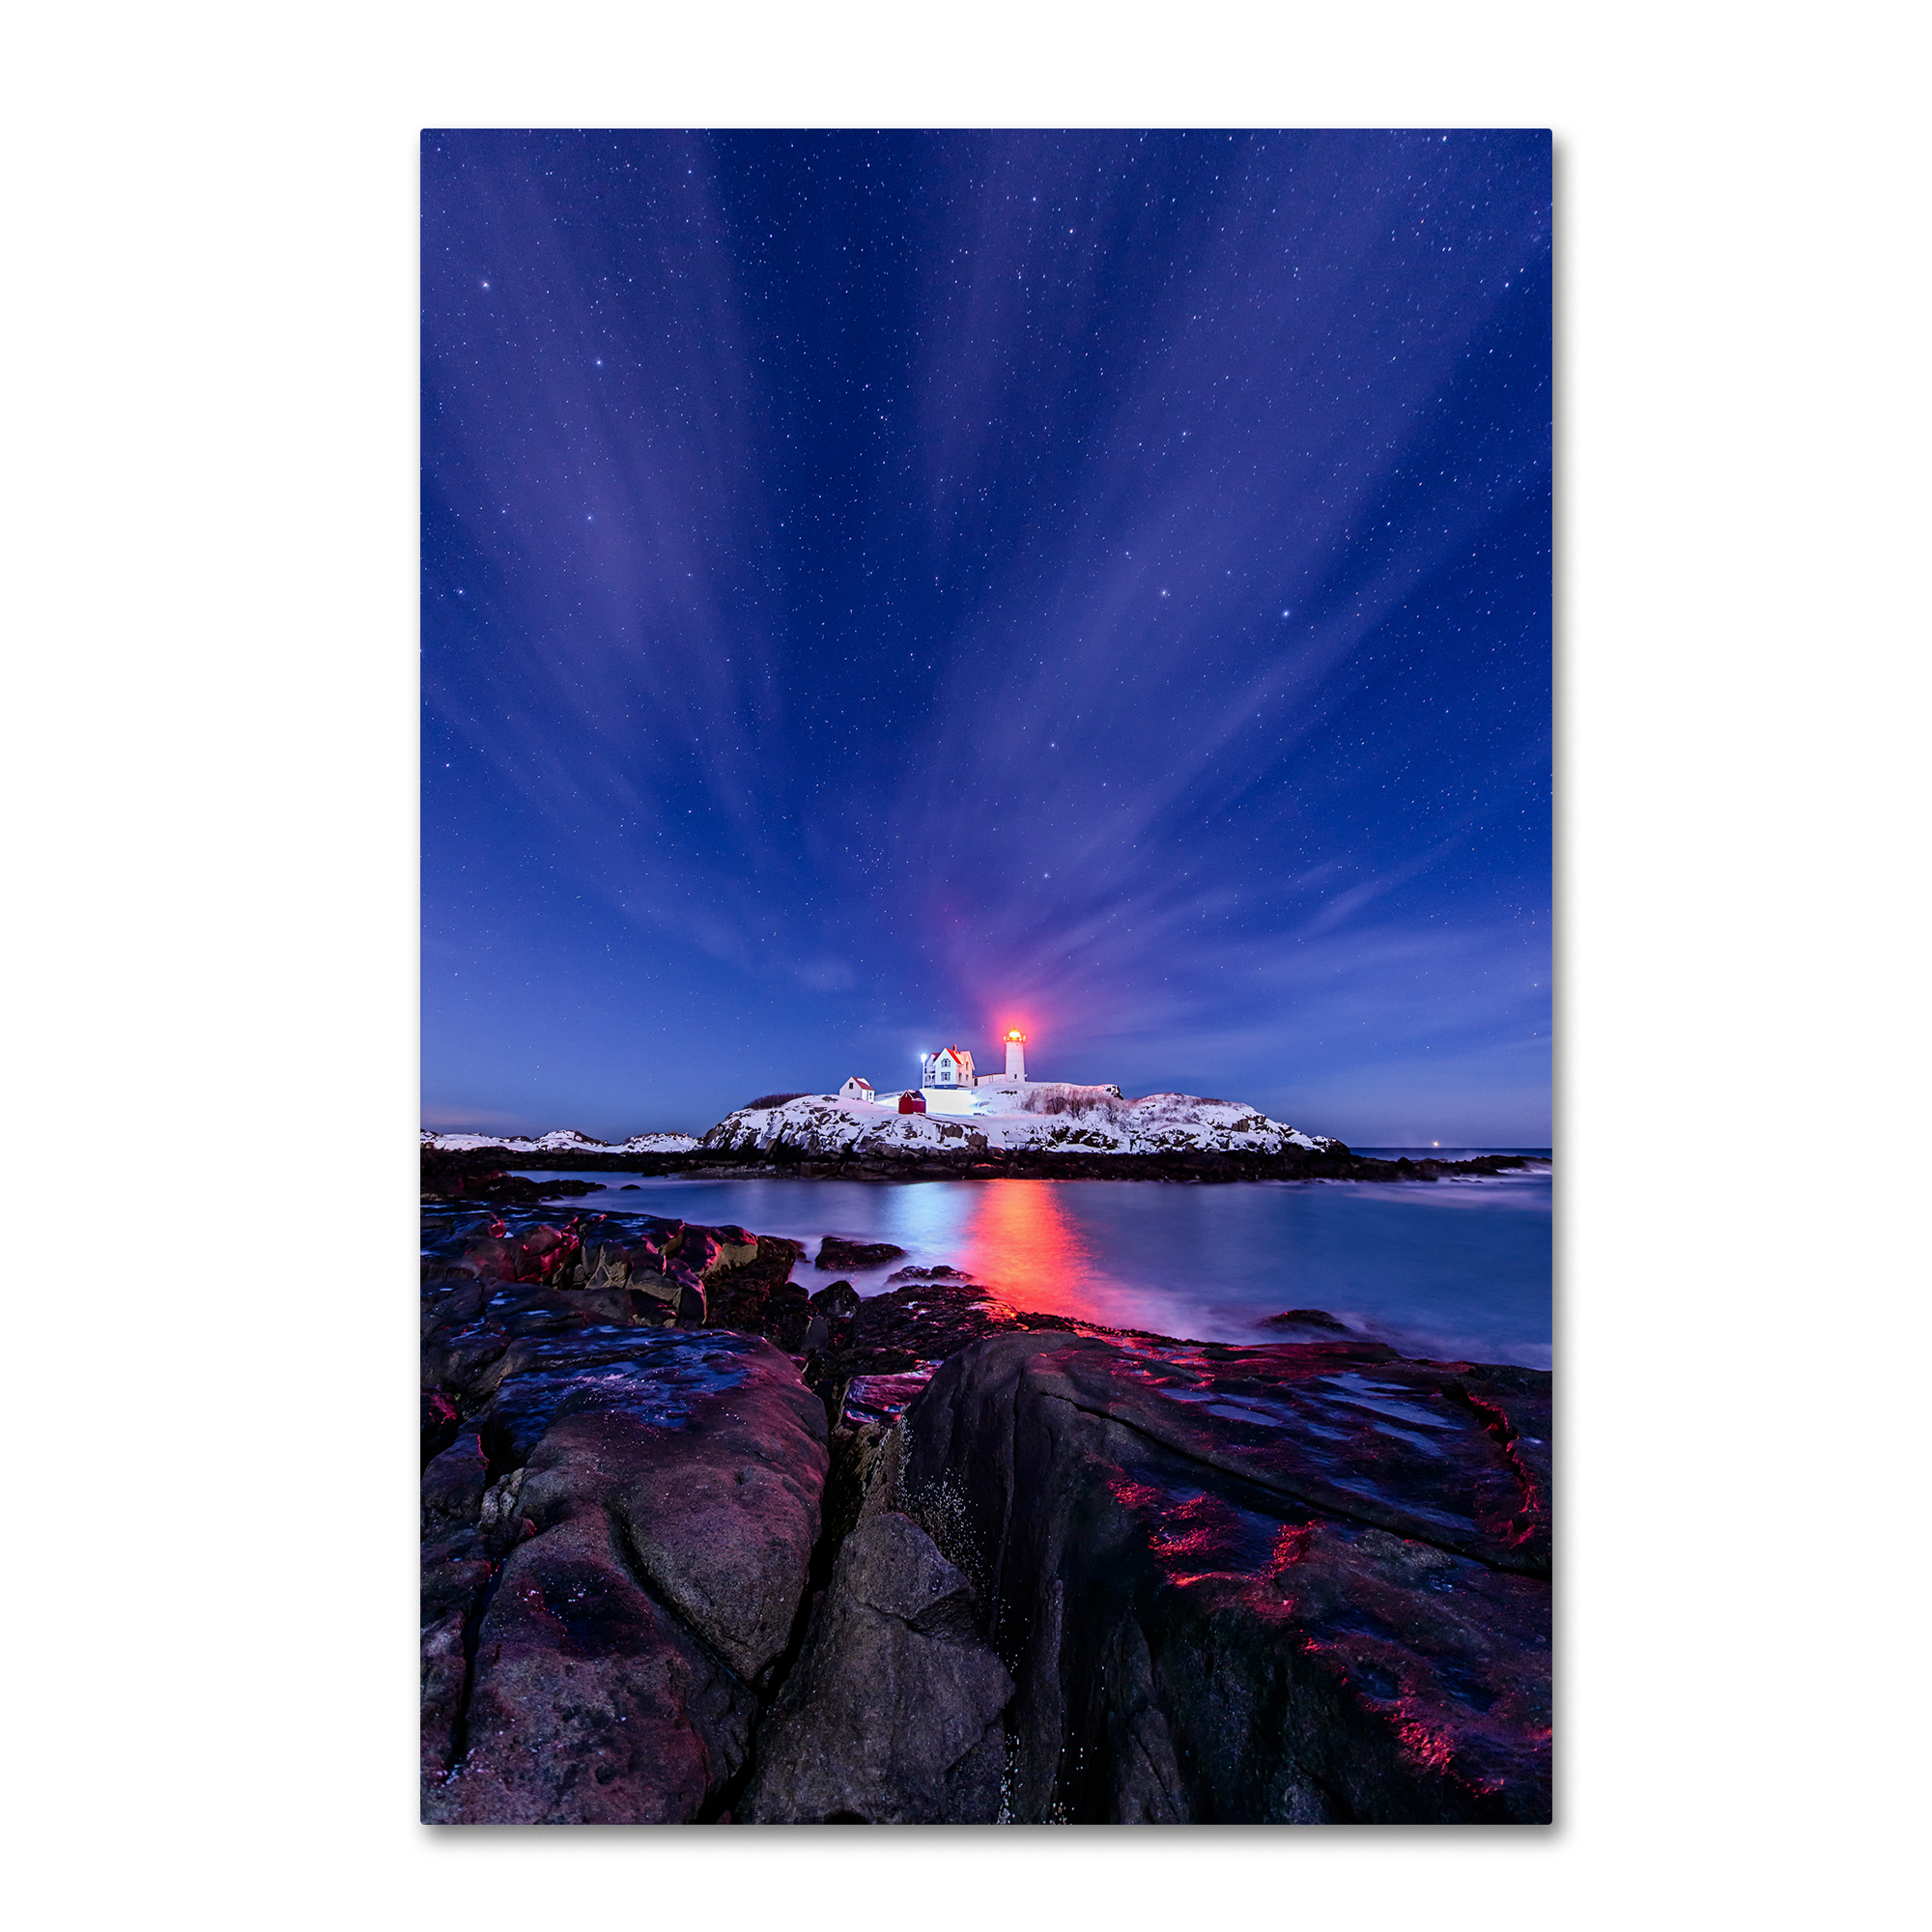 Michael Blanchette Photography 'Light Vapor' Canvas Art 16 x 24